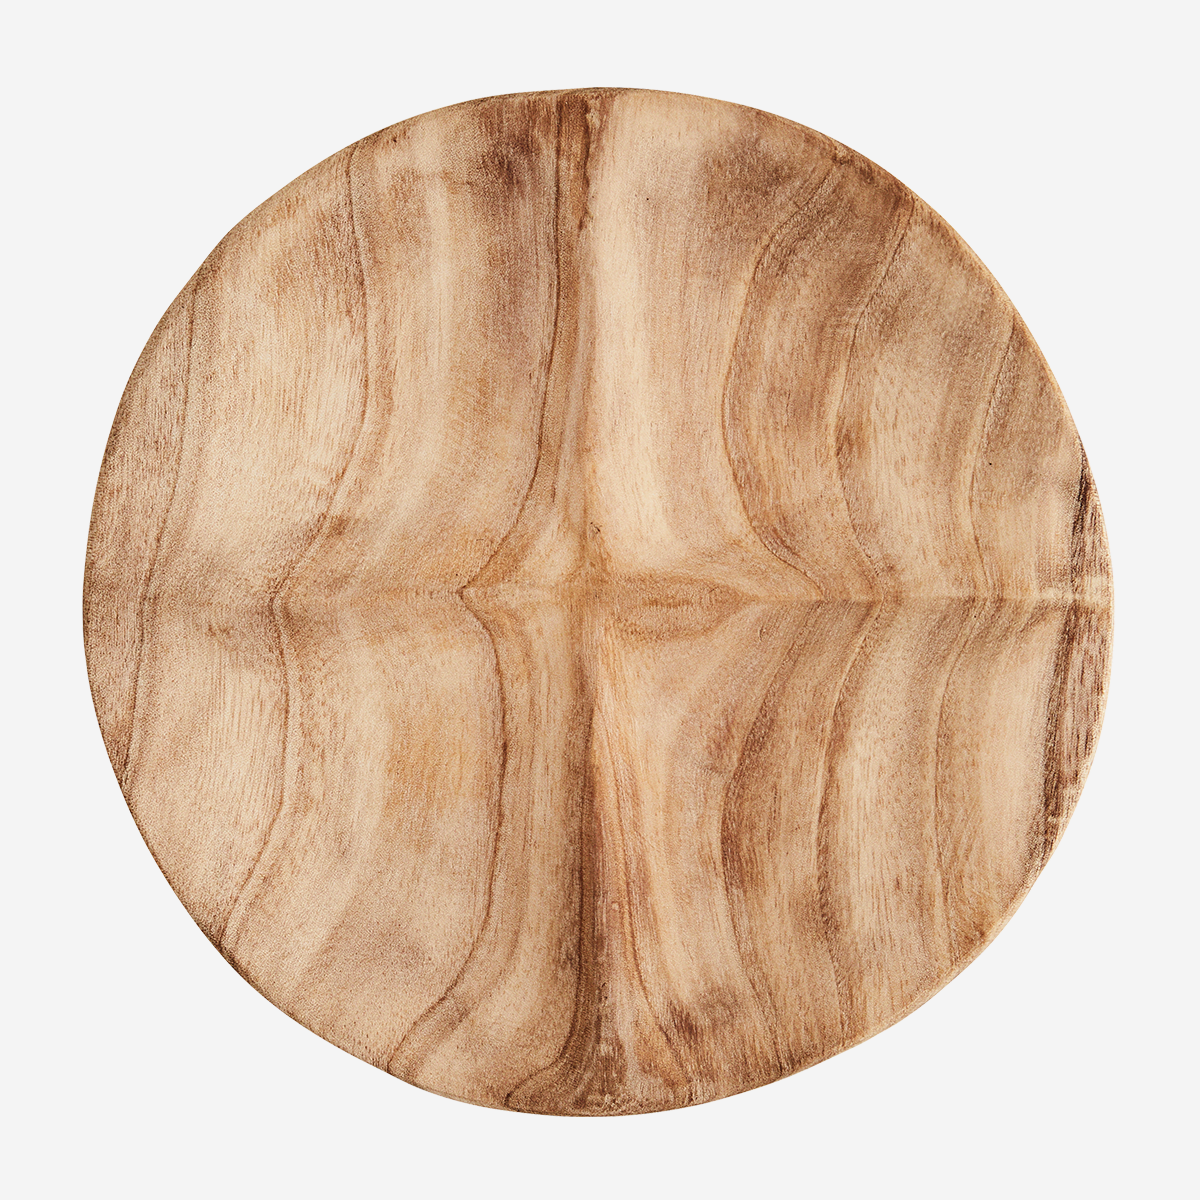 Four part wooden plate